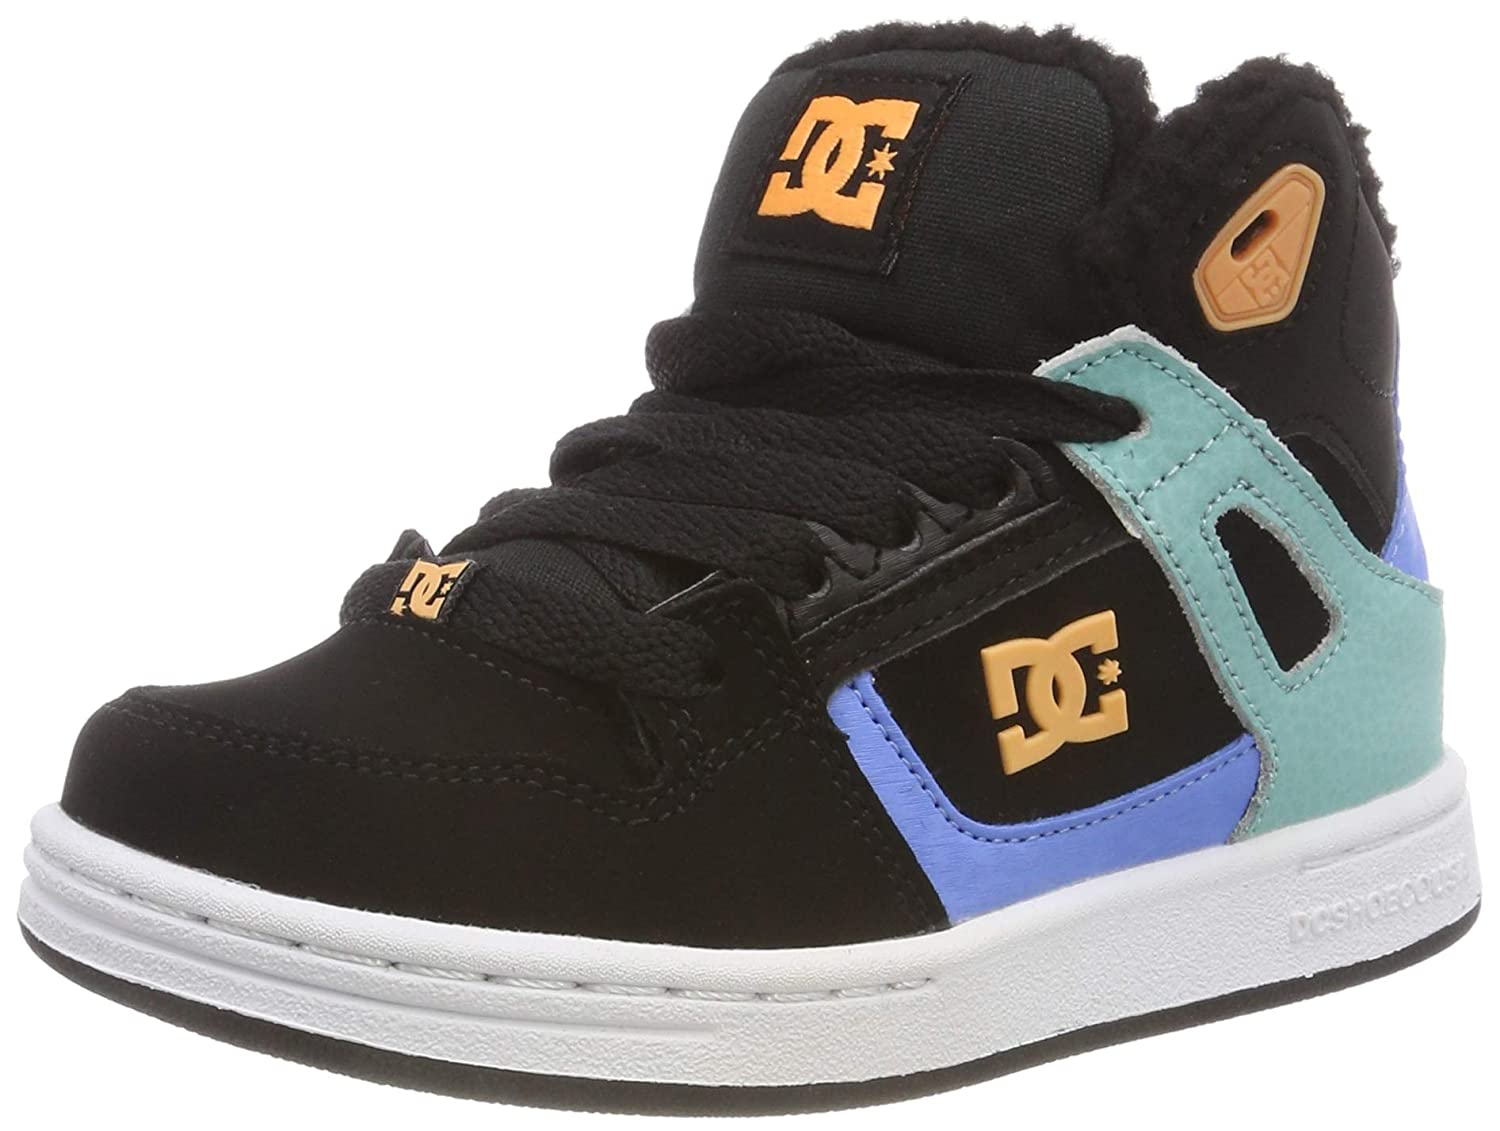 DC Shoes Pure Fille High Top Winter, Chaussures de Skateboard Fille Pure 31 EU|Multicolore (Black/Multi/White Kmw) 3d37fd